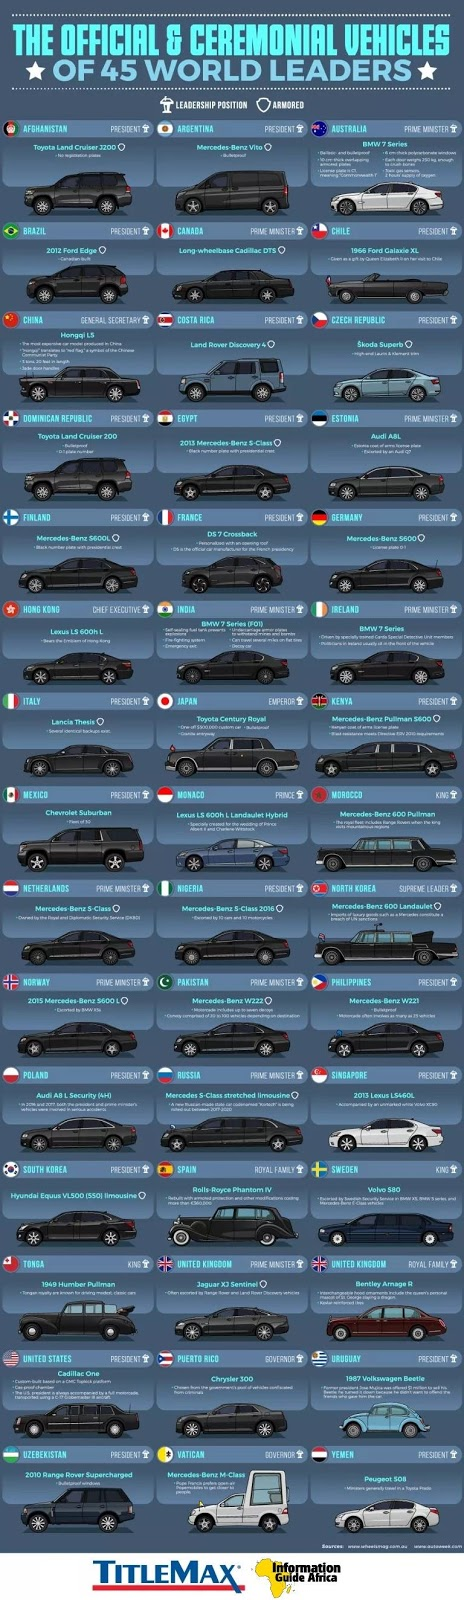 Amazing Photos Of The Official And Ceremonial Vehicles Of Top 45 World Leaders